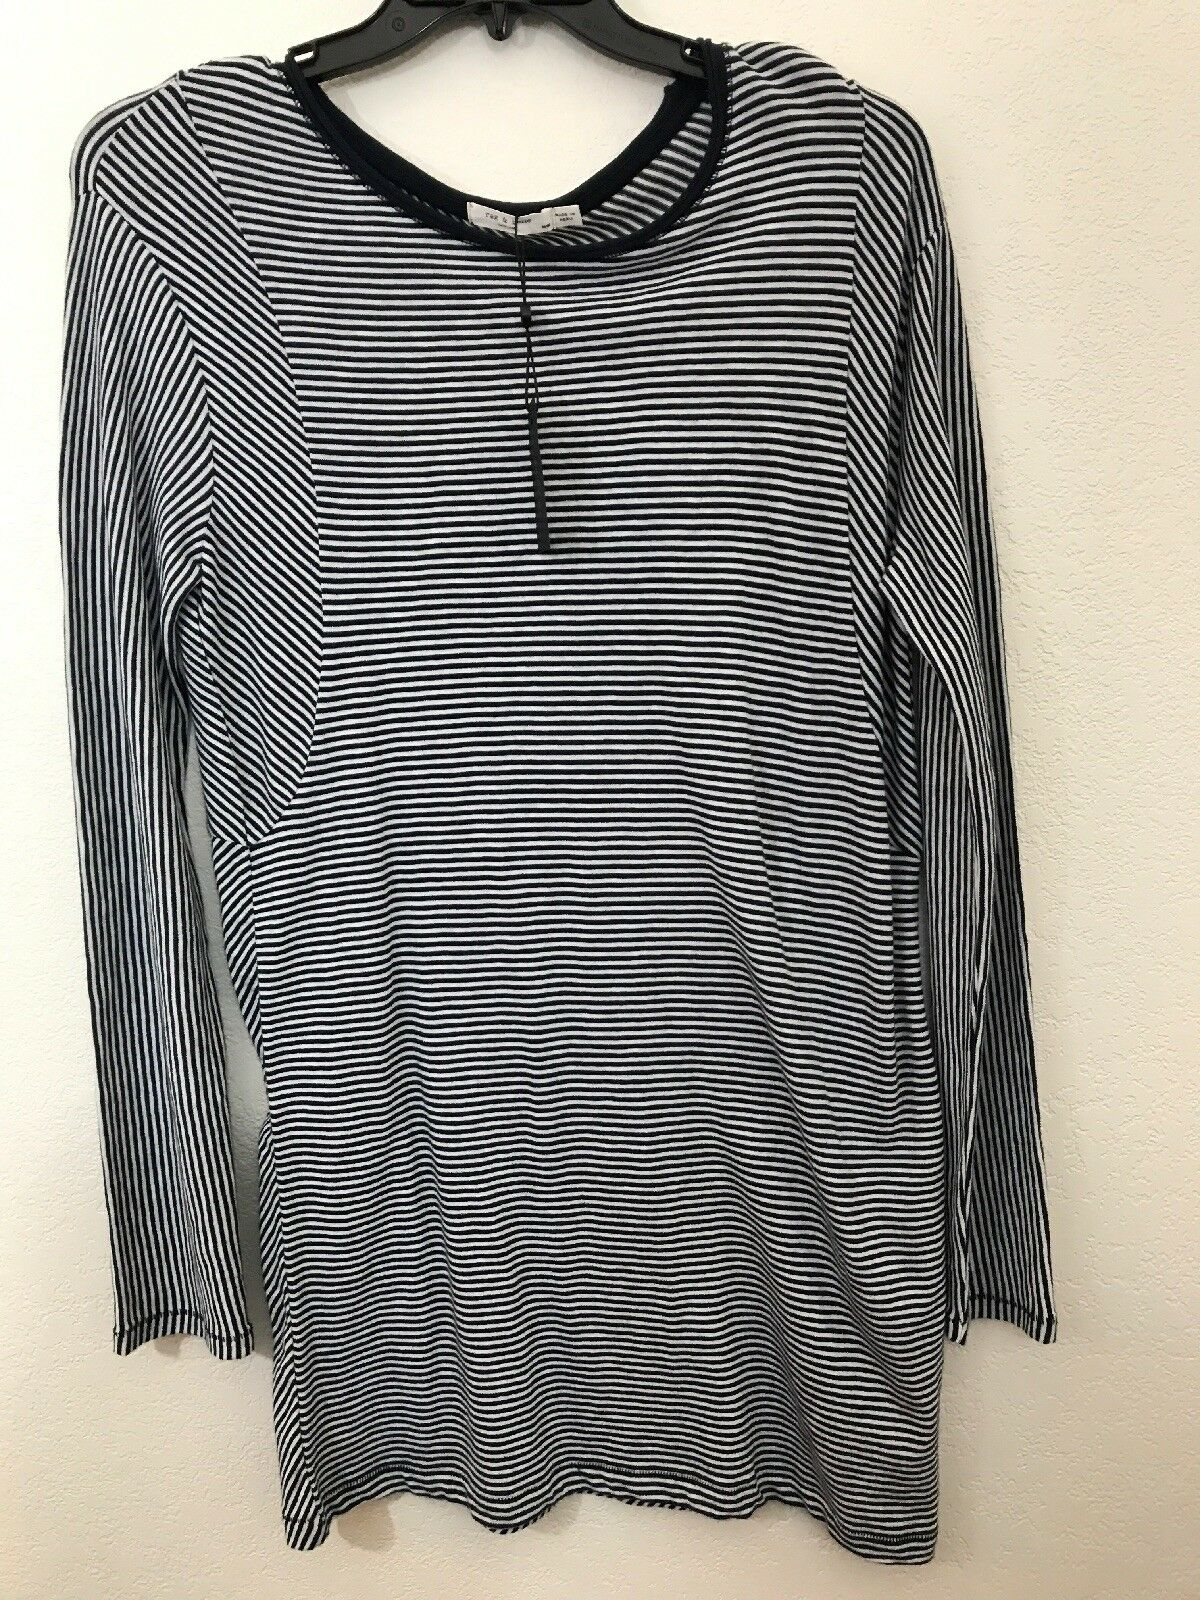 NWT rag & bone New York Striped Knit Knit Knit Dress Long Sleeve M 27029c